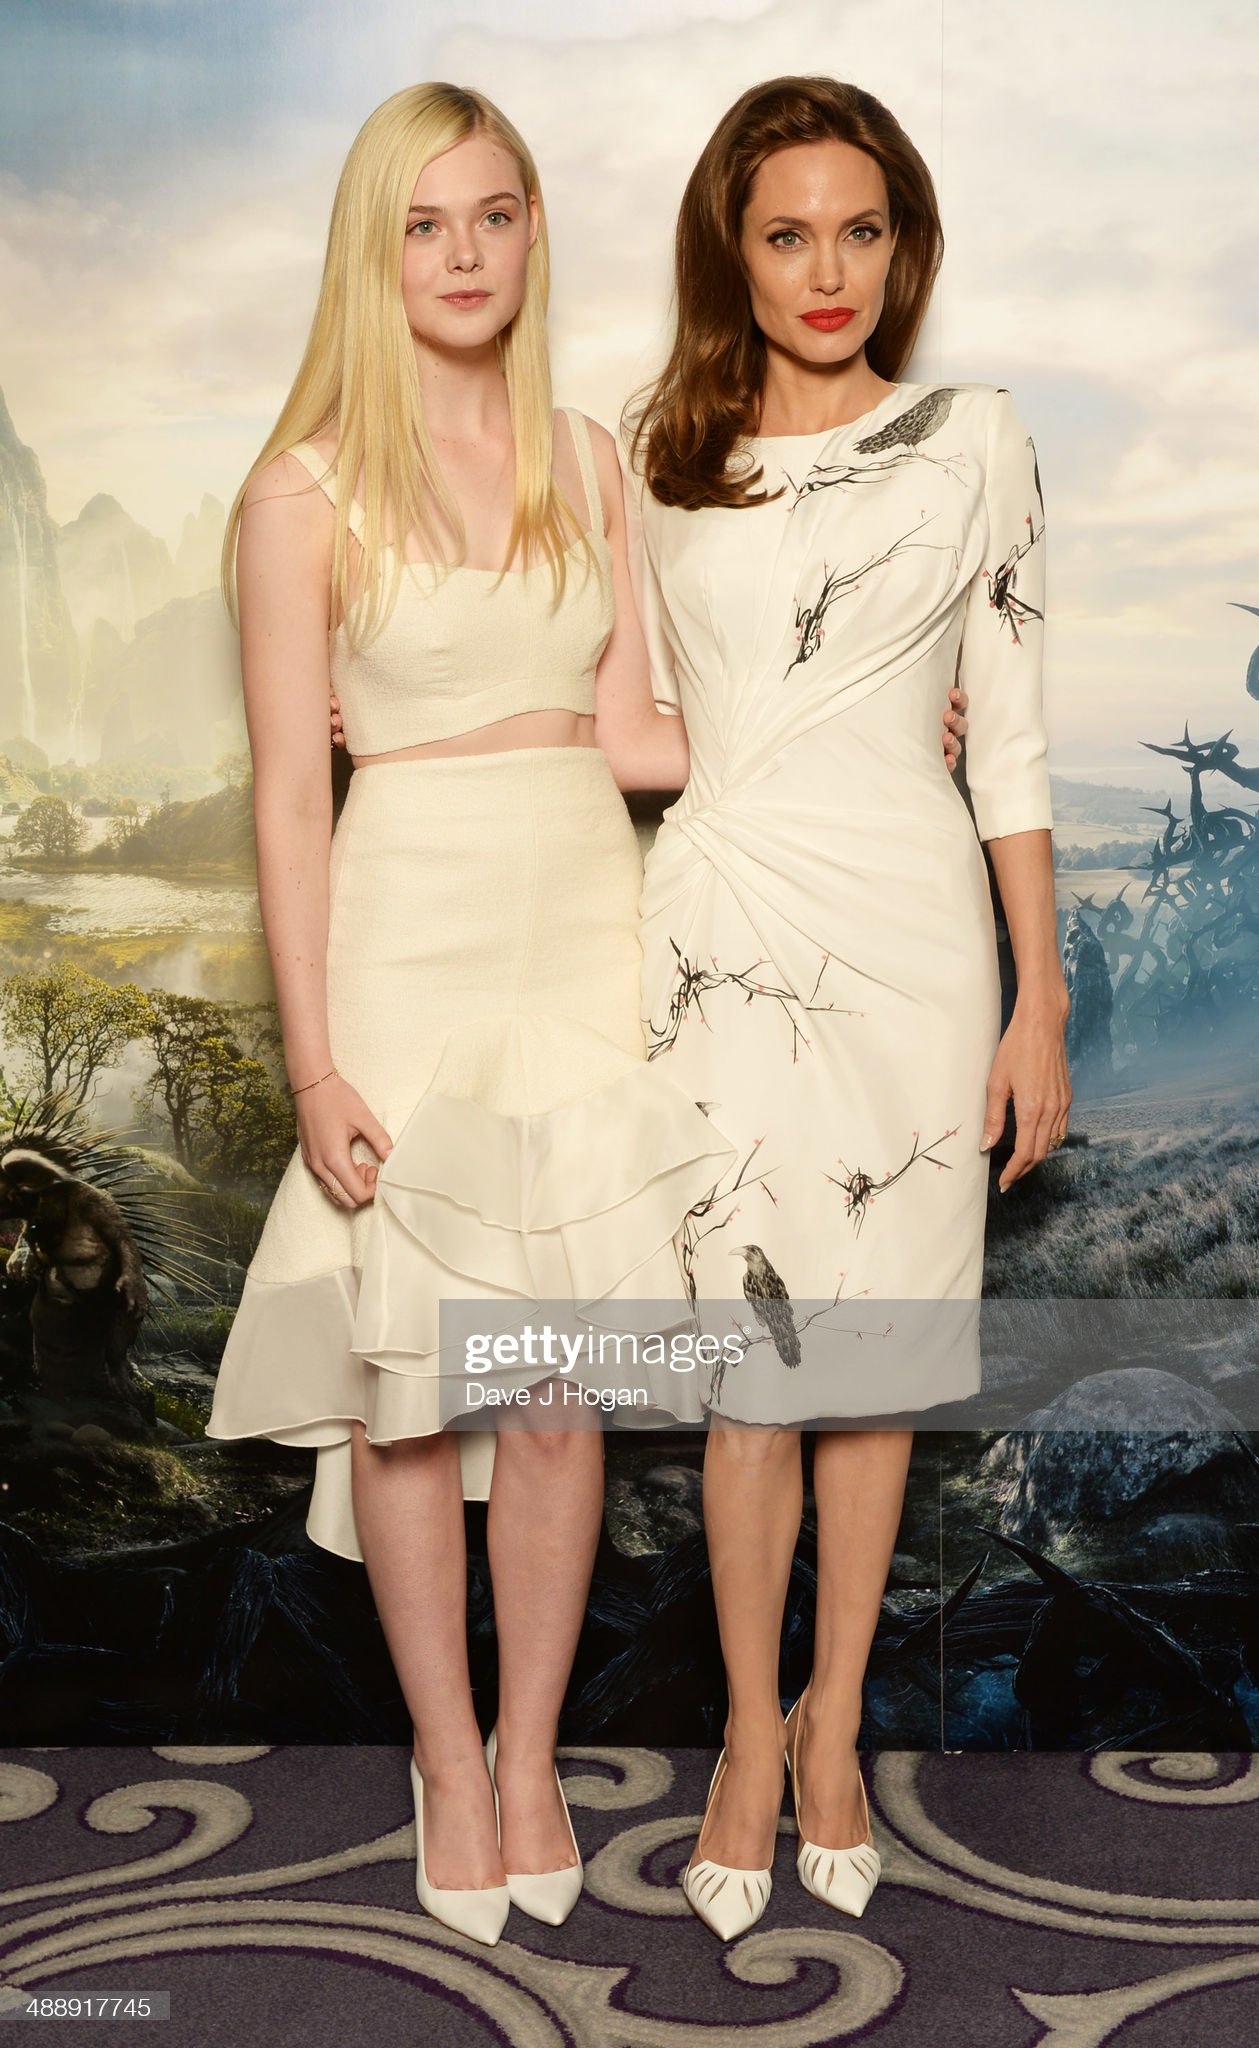 ¿Cuánto mide Elle Fanning? - Altura - Real height Elle-fanning-and-angelina-jolie-attend-a-photocall-for-maleficent-at-picture-id488917745?s=2048x2048